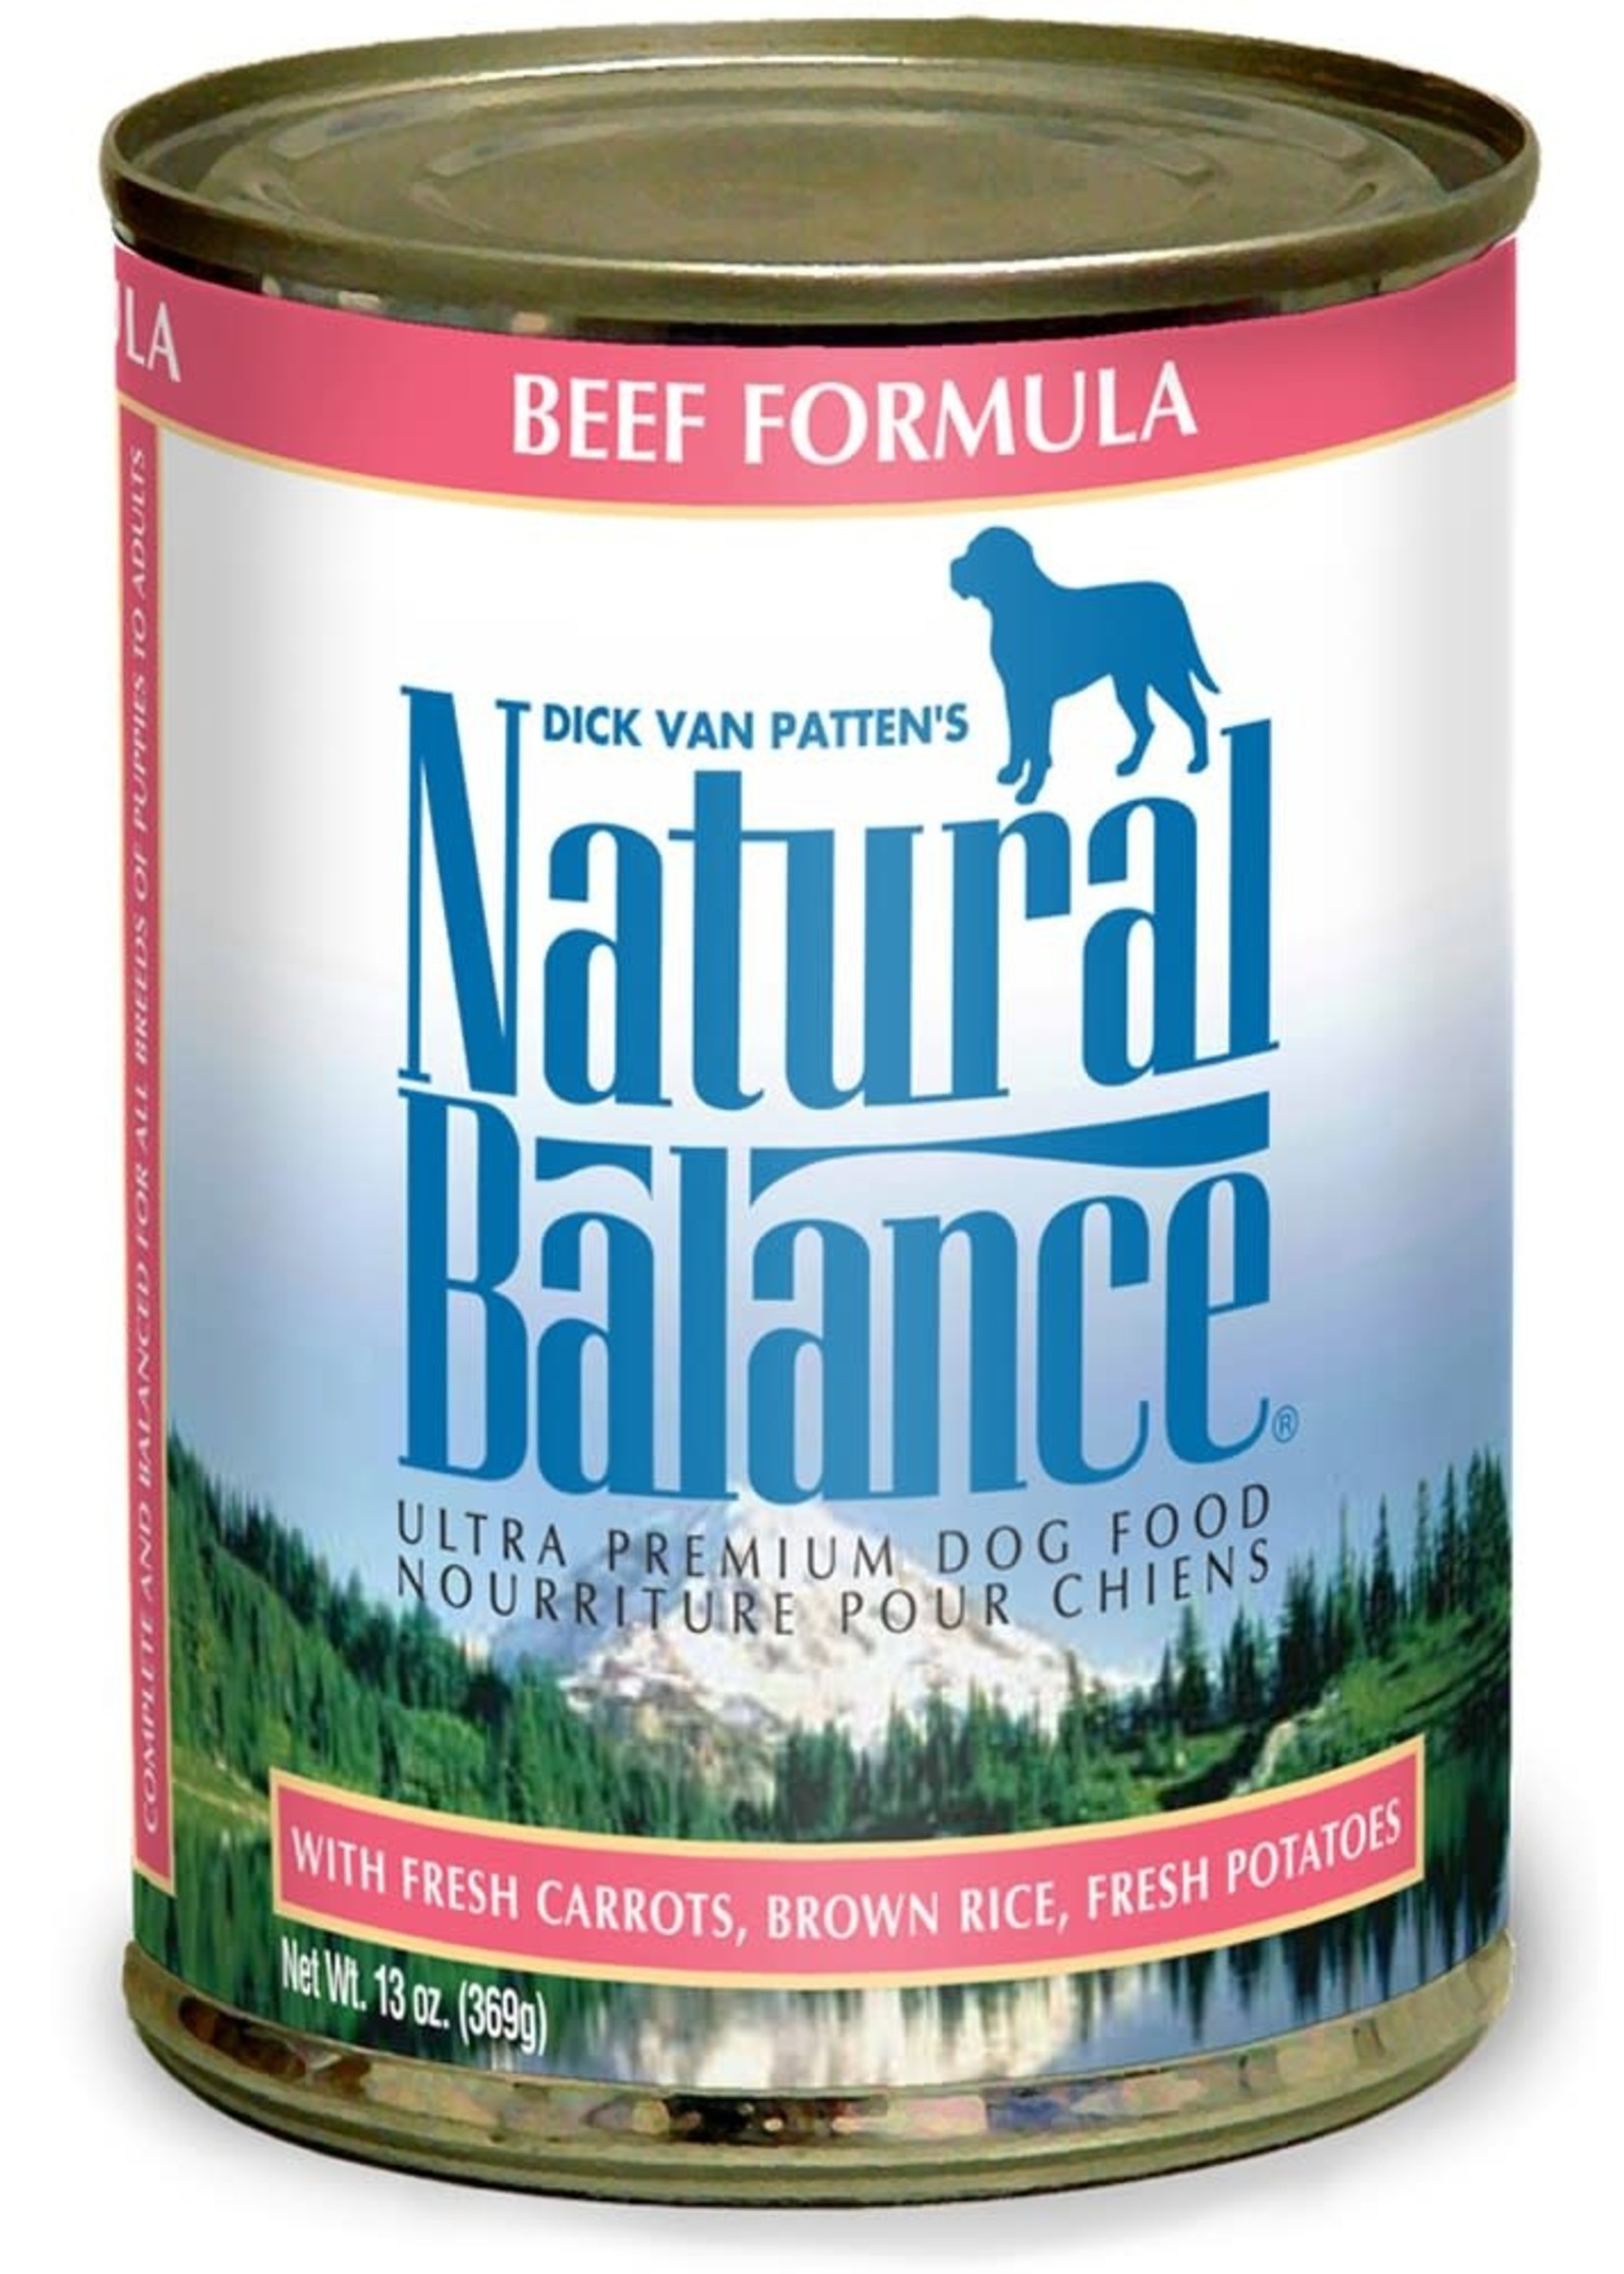 Natural Balance Pet Foods, Inc. Natural Balance Beef Formula K9 13.2oz